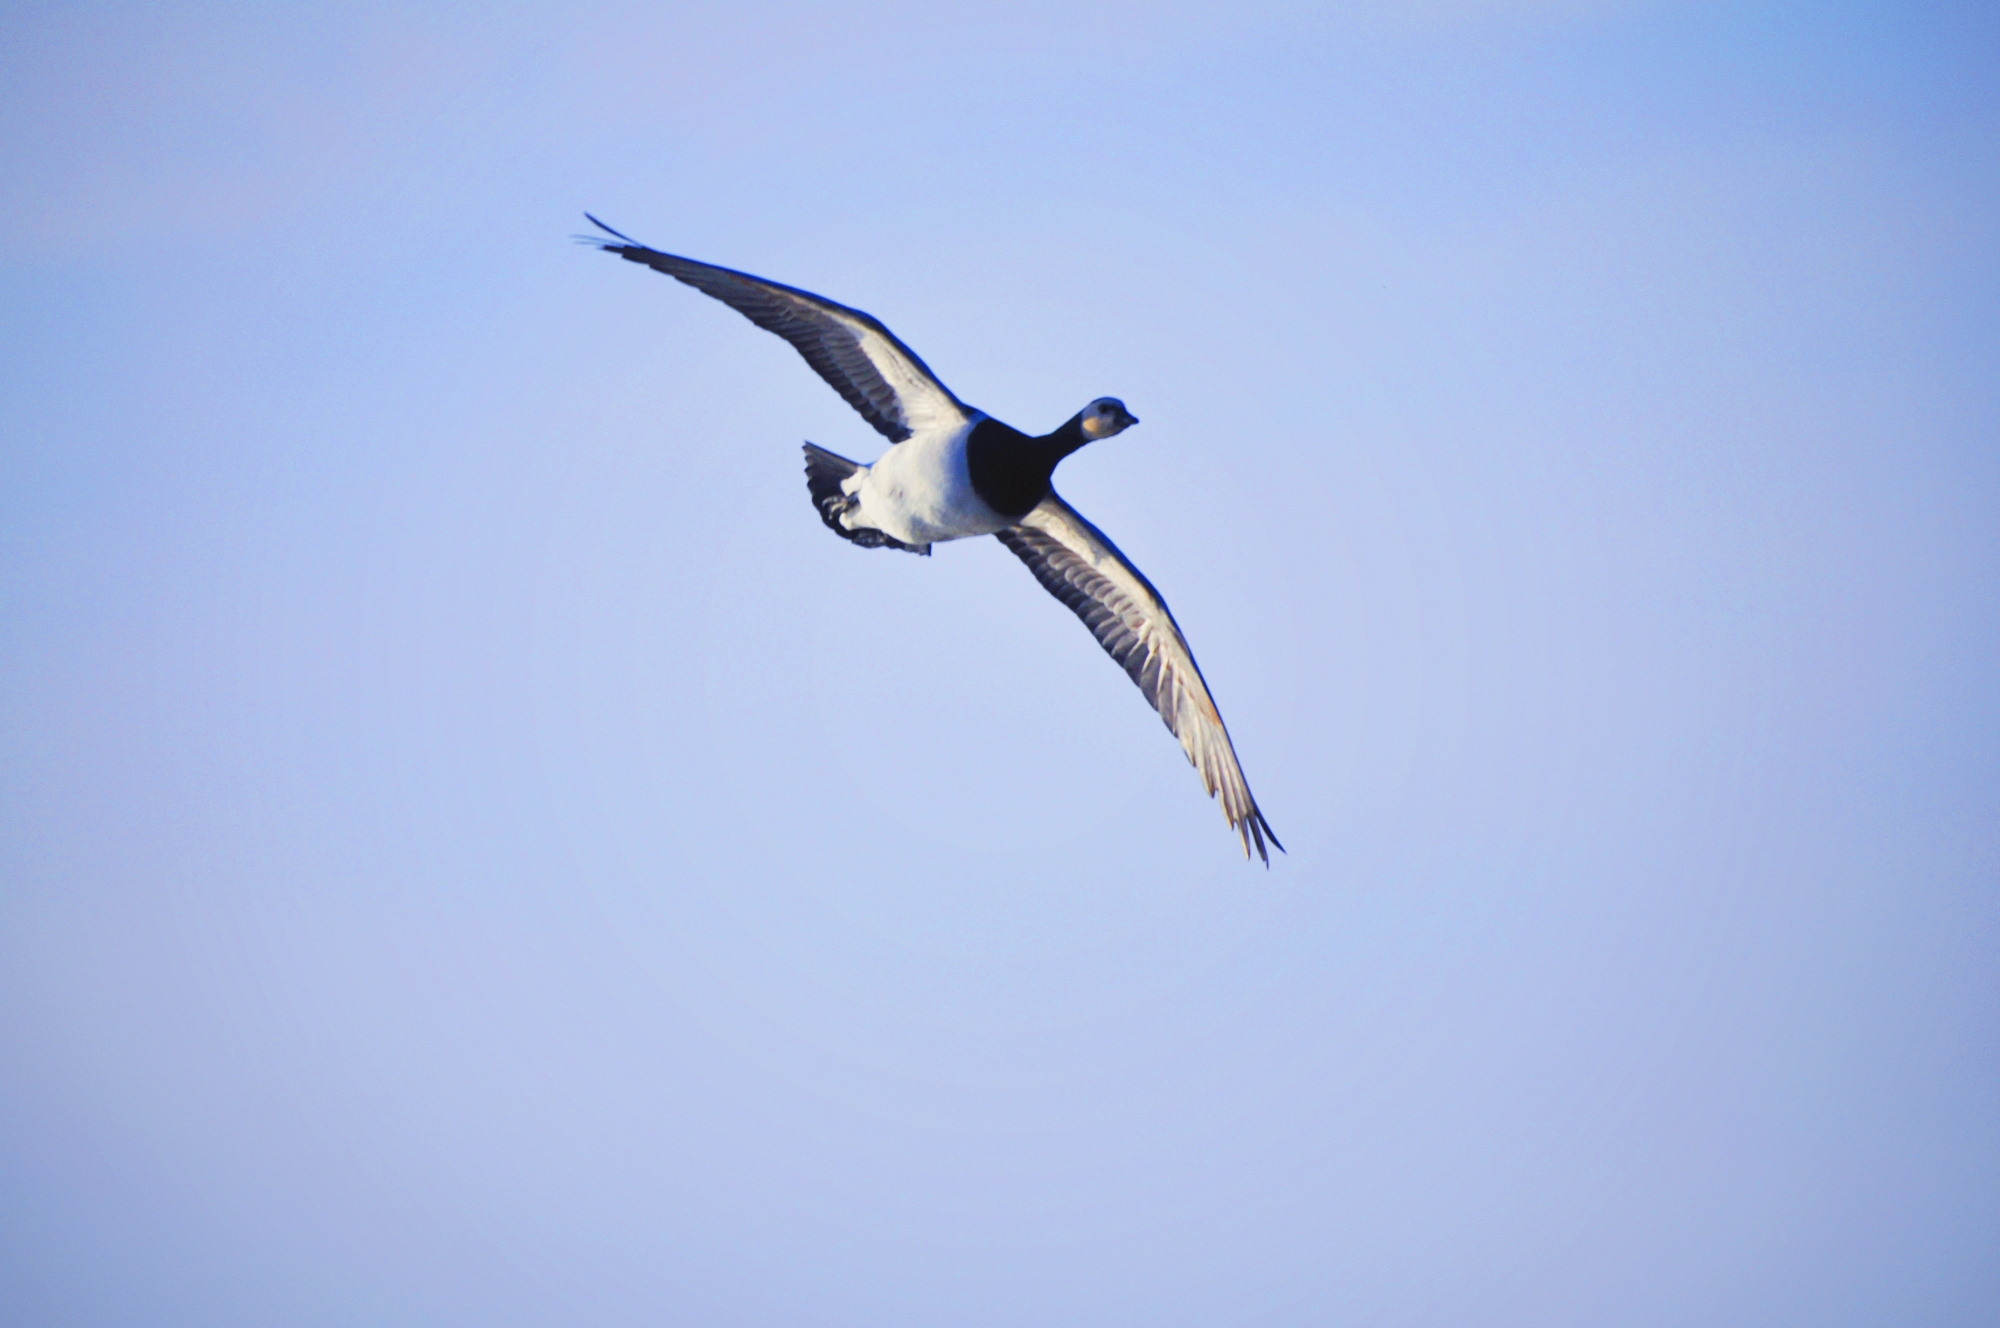 A barnacle goose soars through the air